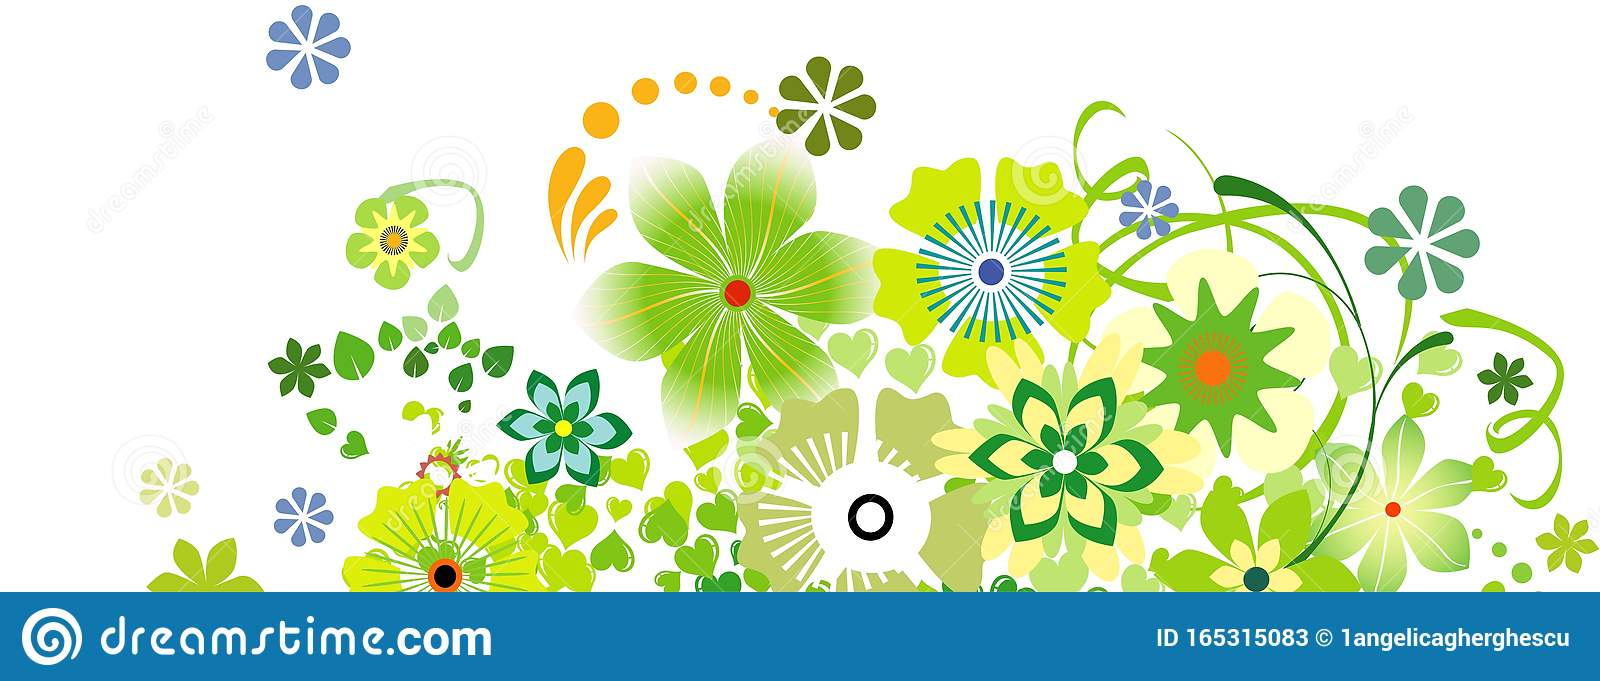 Spring Decoration With Leaves And Flowers For Facebook Cover